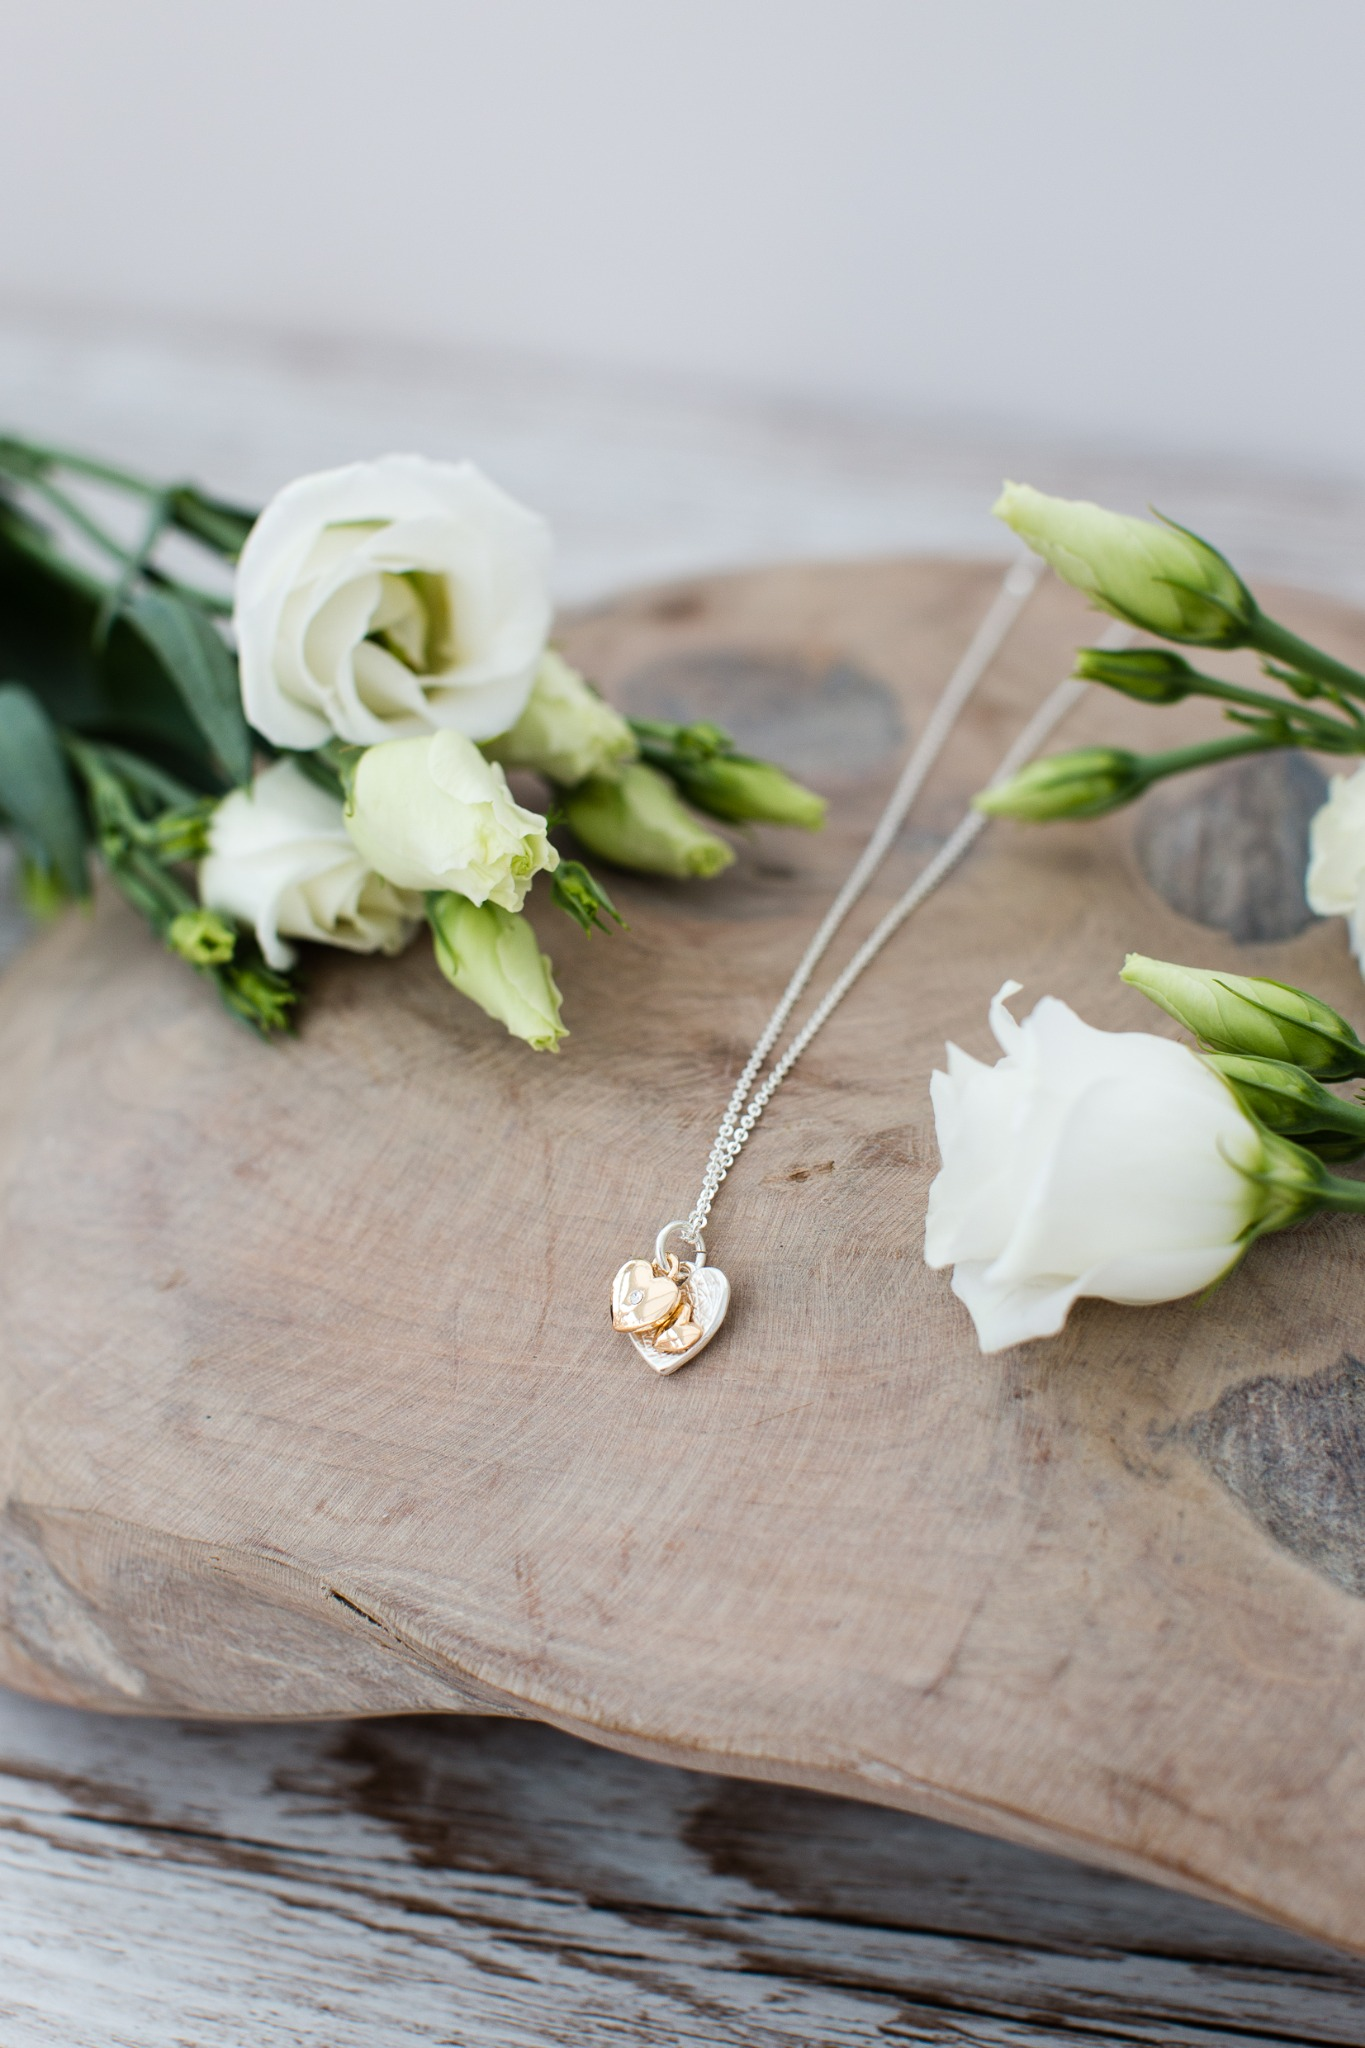 Just Jules Double Heart Necklace In Silver And Gold Plated Finish